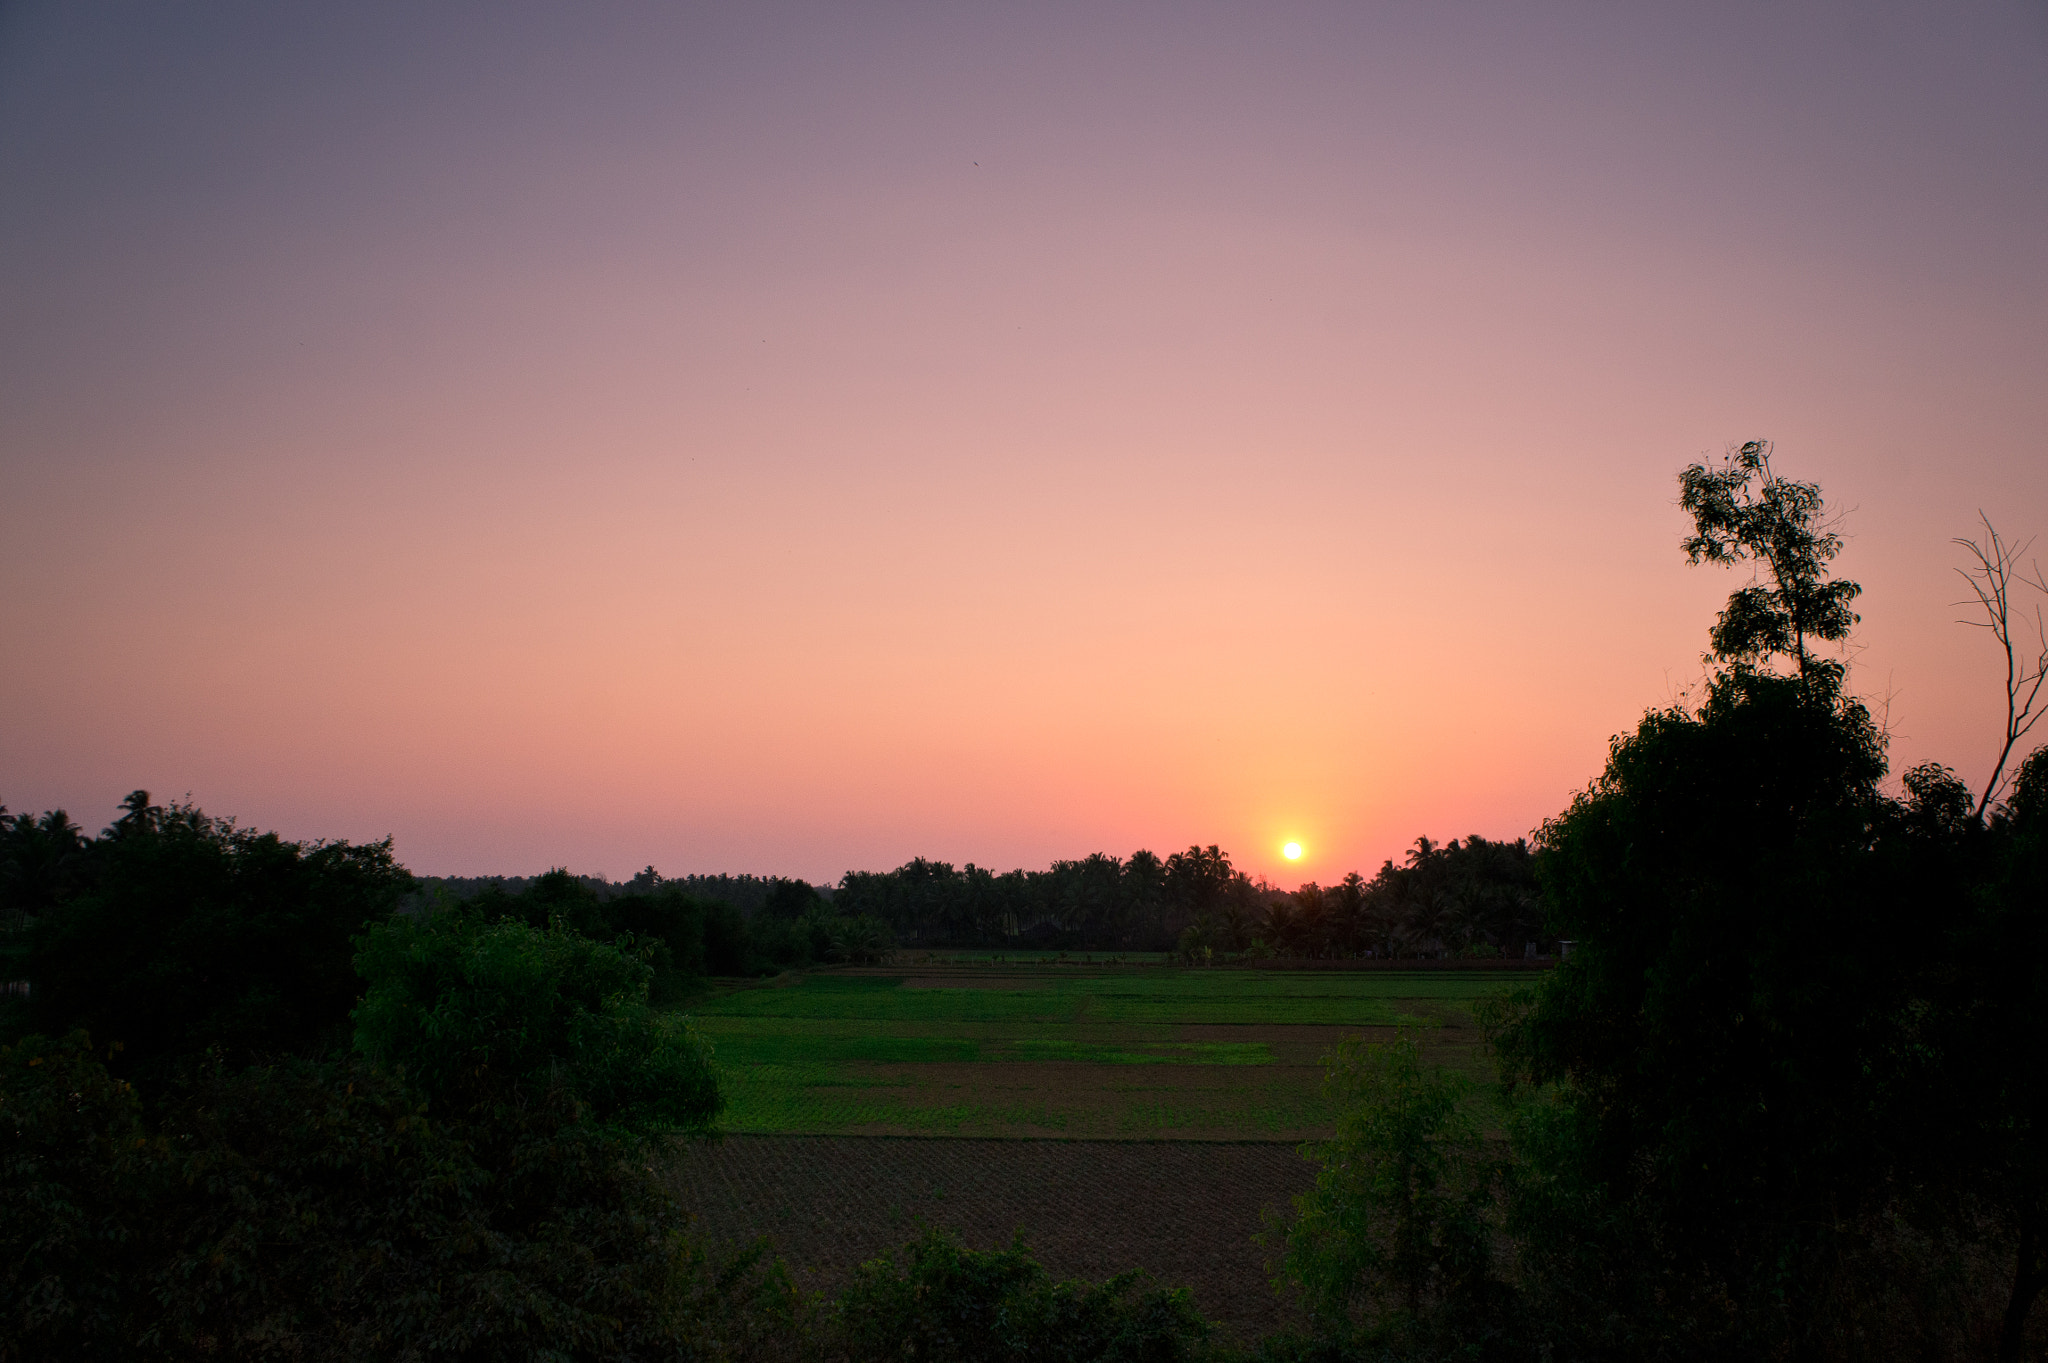 Photograph Sunset by Nagendra Kumar on 500px